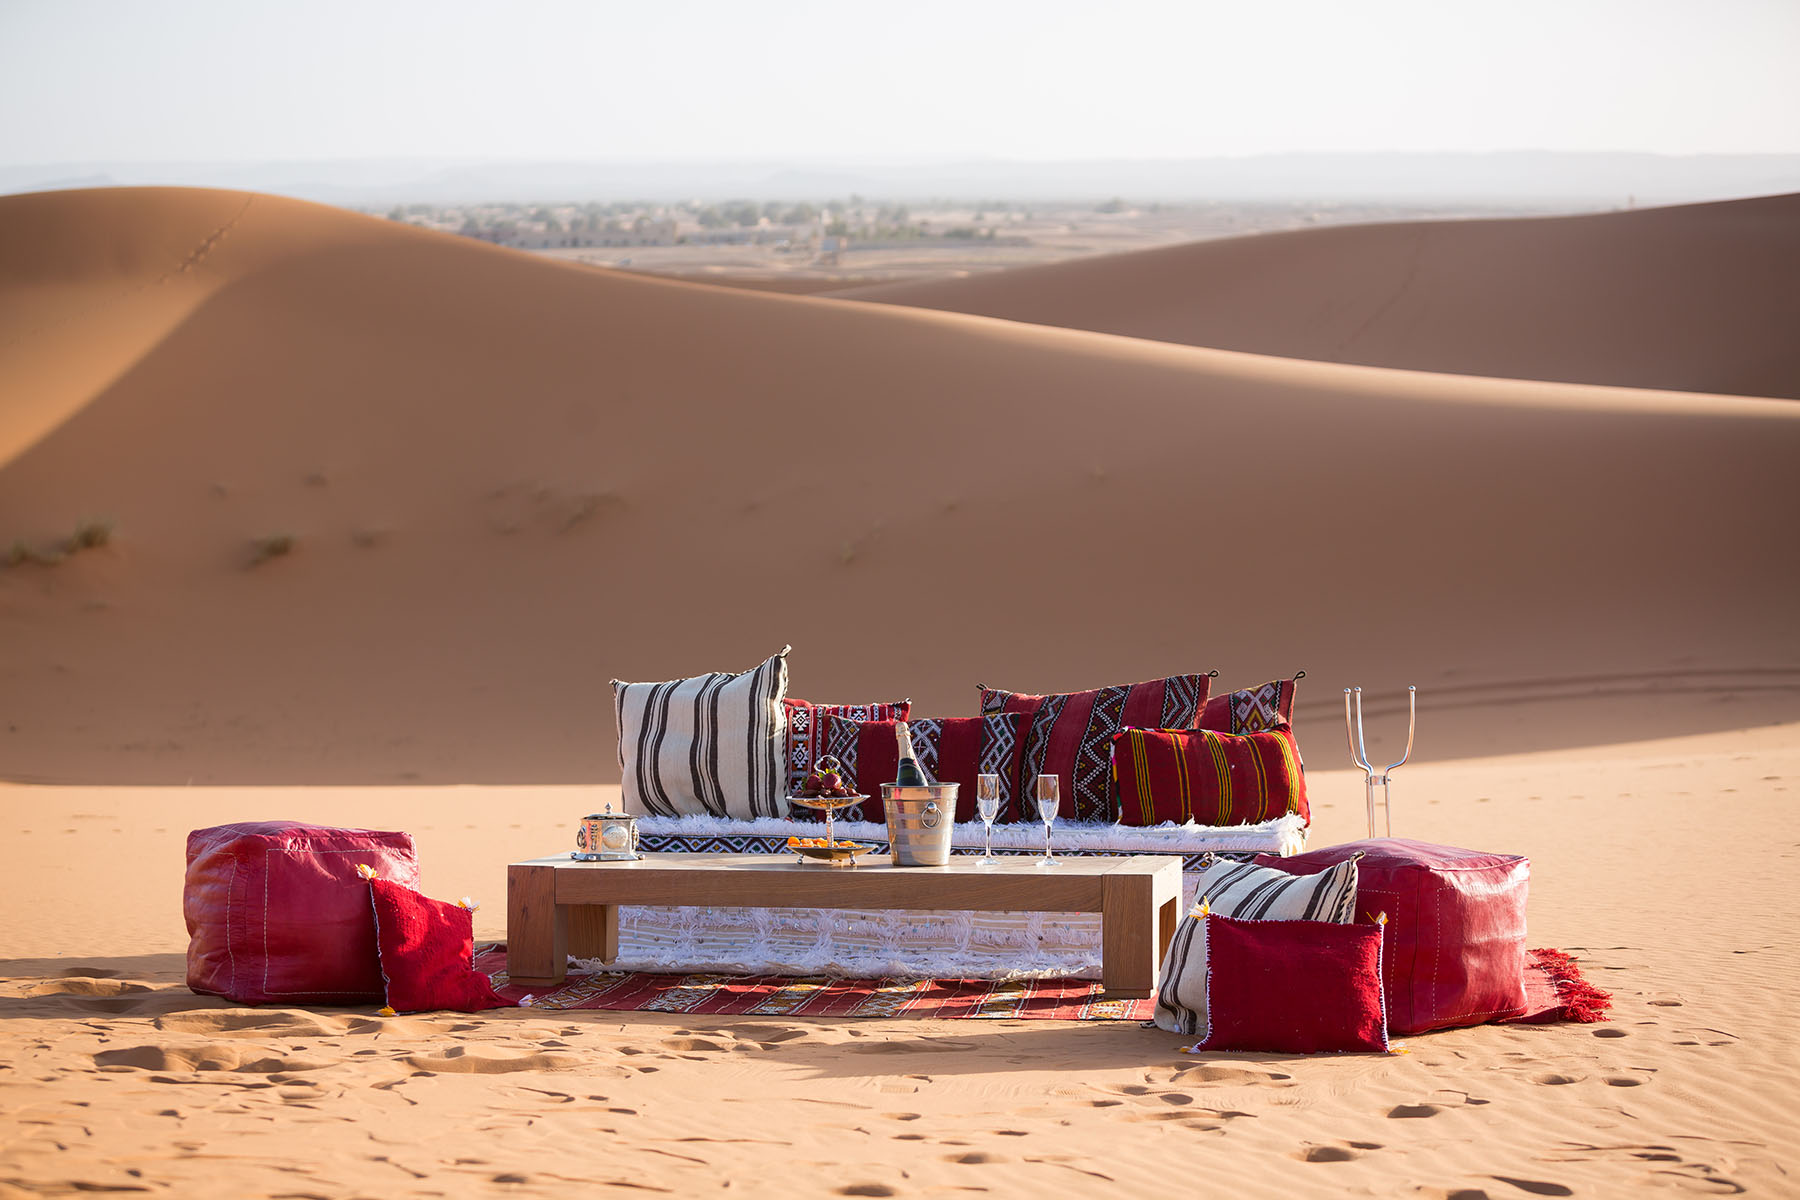 Week in the red dunes of Merzouga